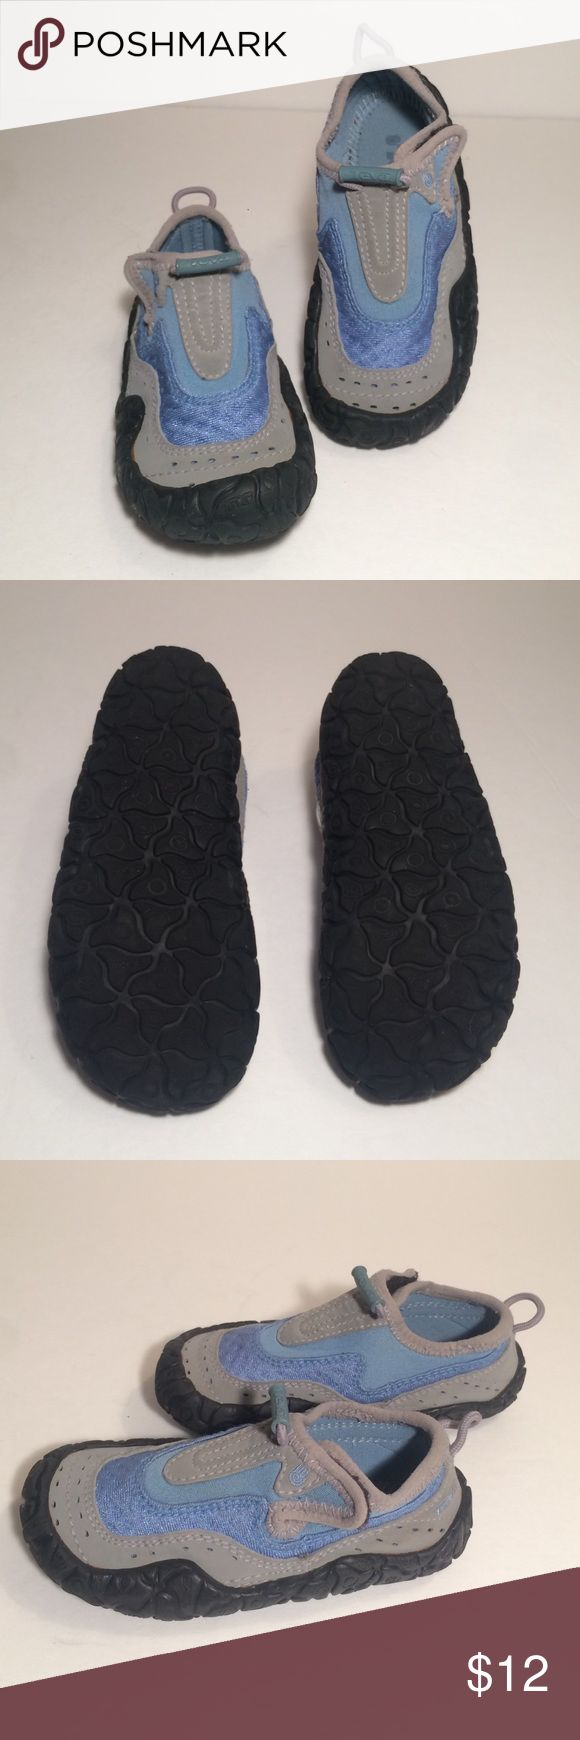 """Teva Kid's Shoes These Teva shows are in great condition! They have a Velcro closure and mixed textiles. These are grey and light blue. Kid's size 9, they measure approximately 7"""" from toe to heel. Teva Shoes"""